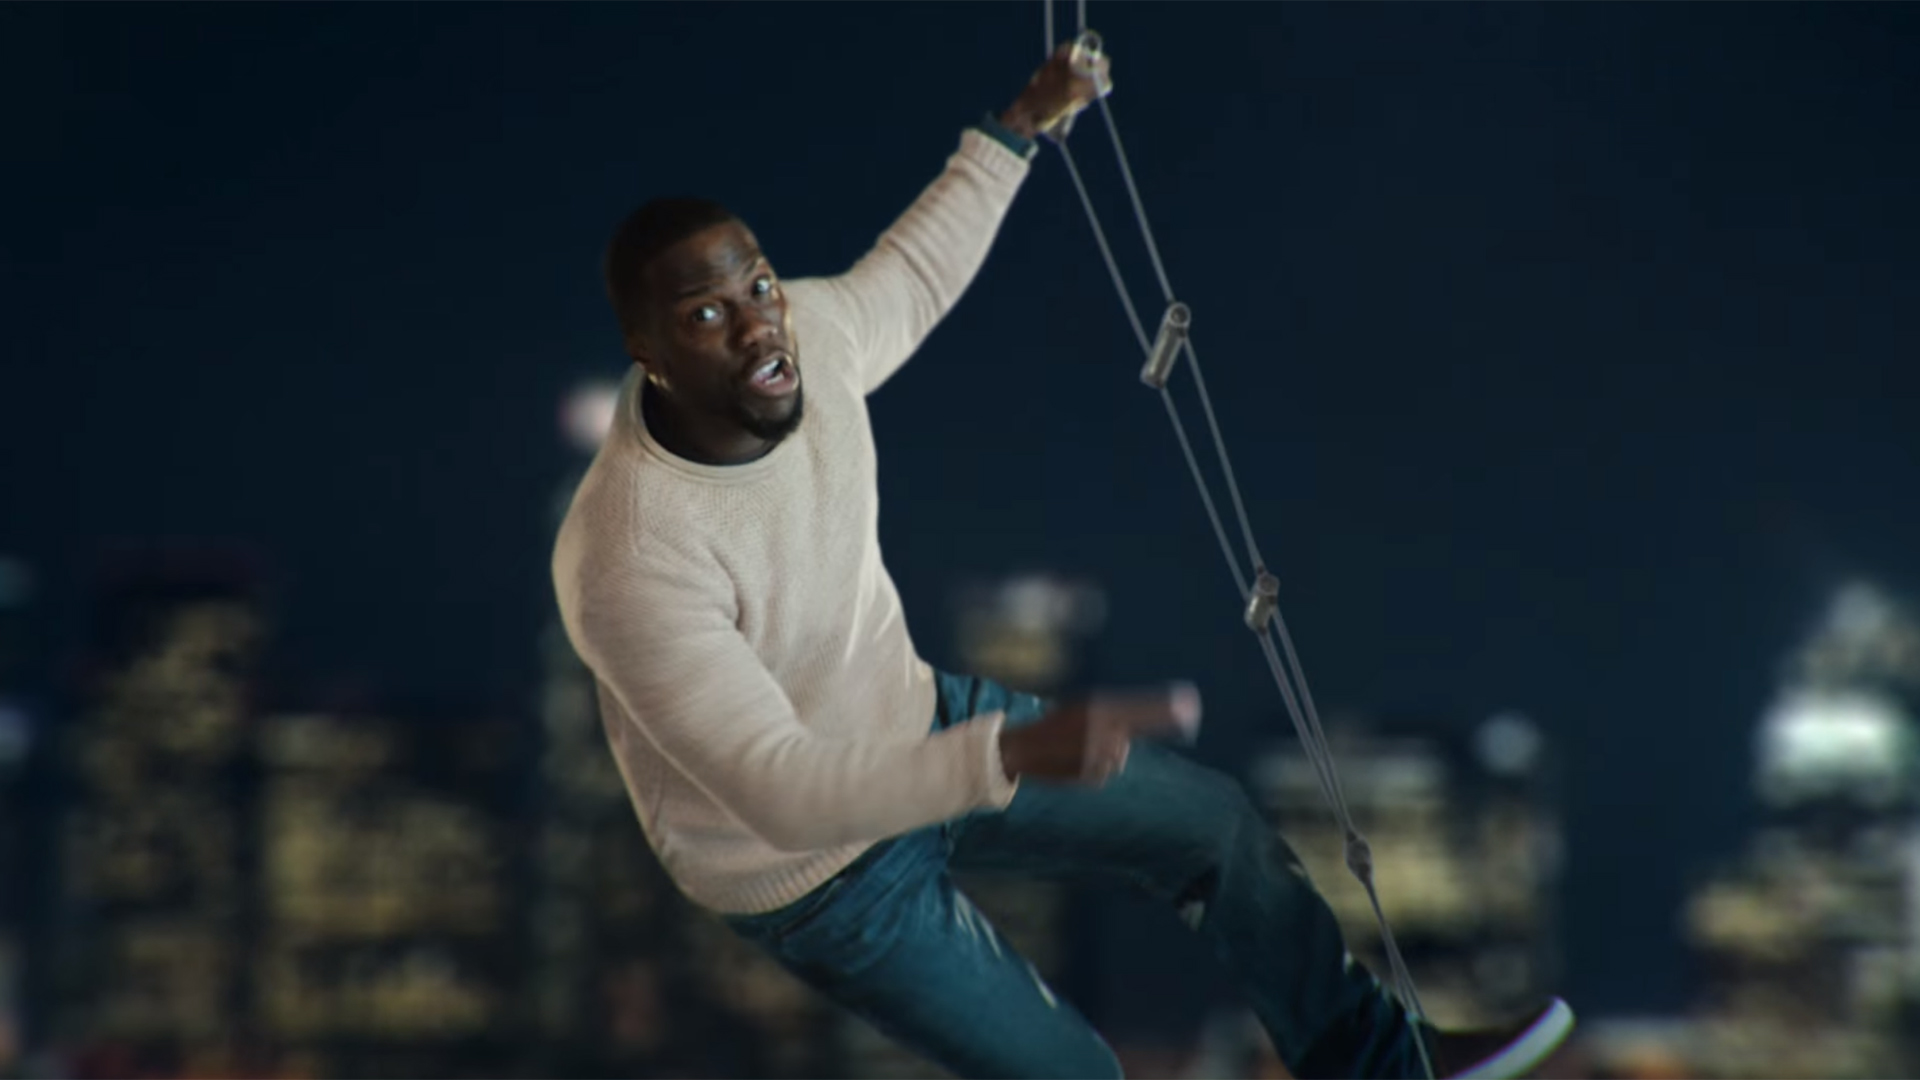 Kevin Hart Drives Daughter S Date Crazy In Hyundai Super